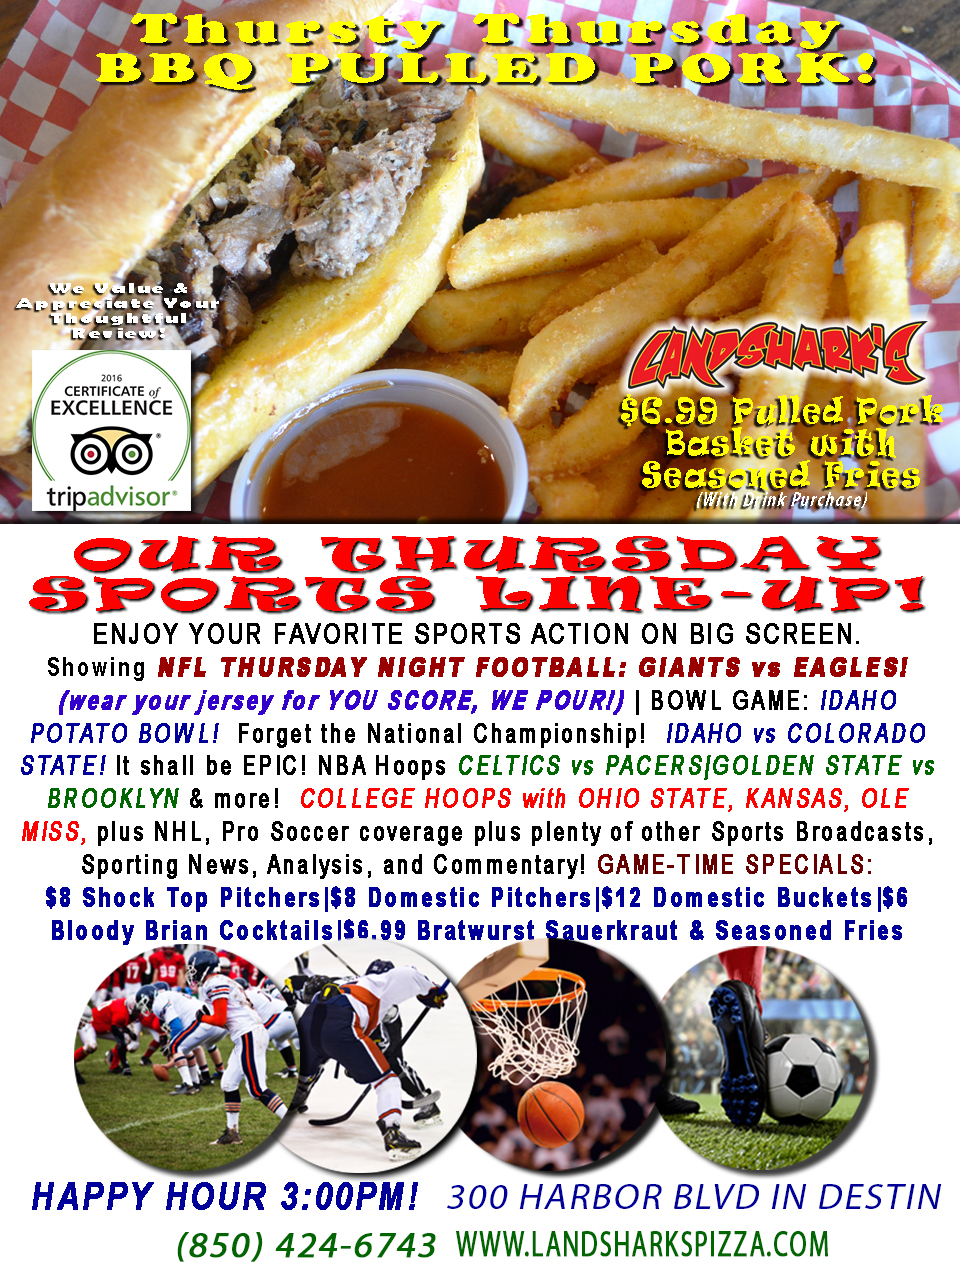 CHRISTMAS-TIME BBQ $6.99 BBQ Basket, THURSDAY NIGHT NFL GIANTS vs EAGLES with YOU SCORE, WE POUR, Hockey, NBA & NCAA Hoops!